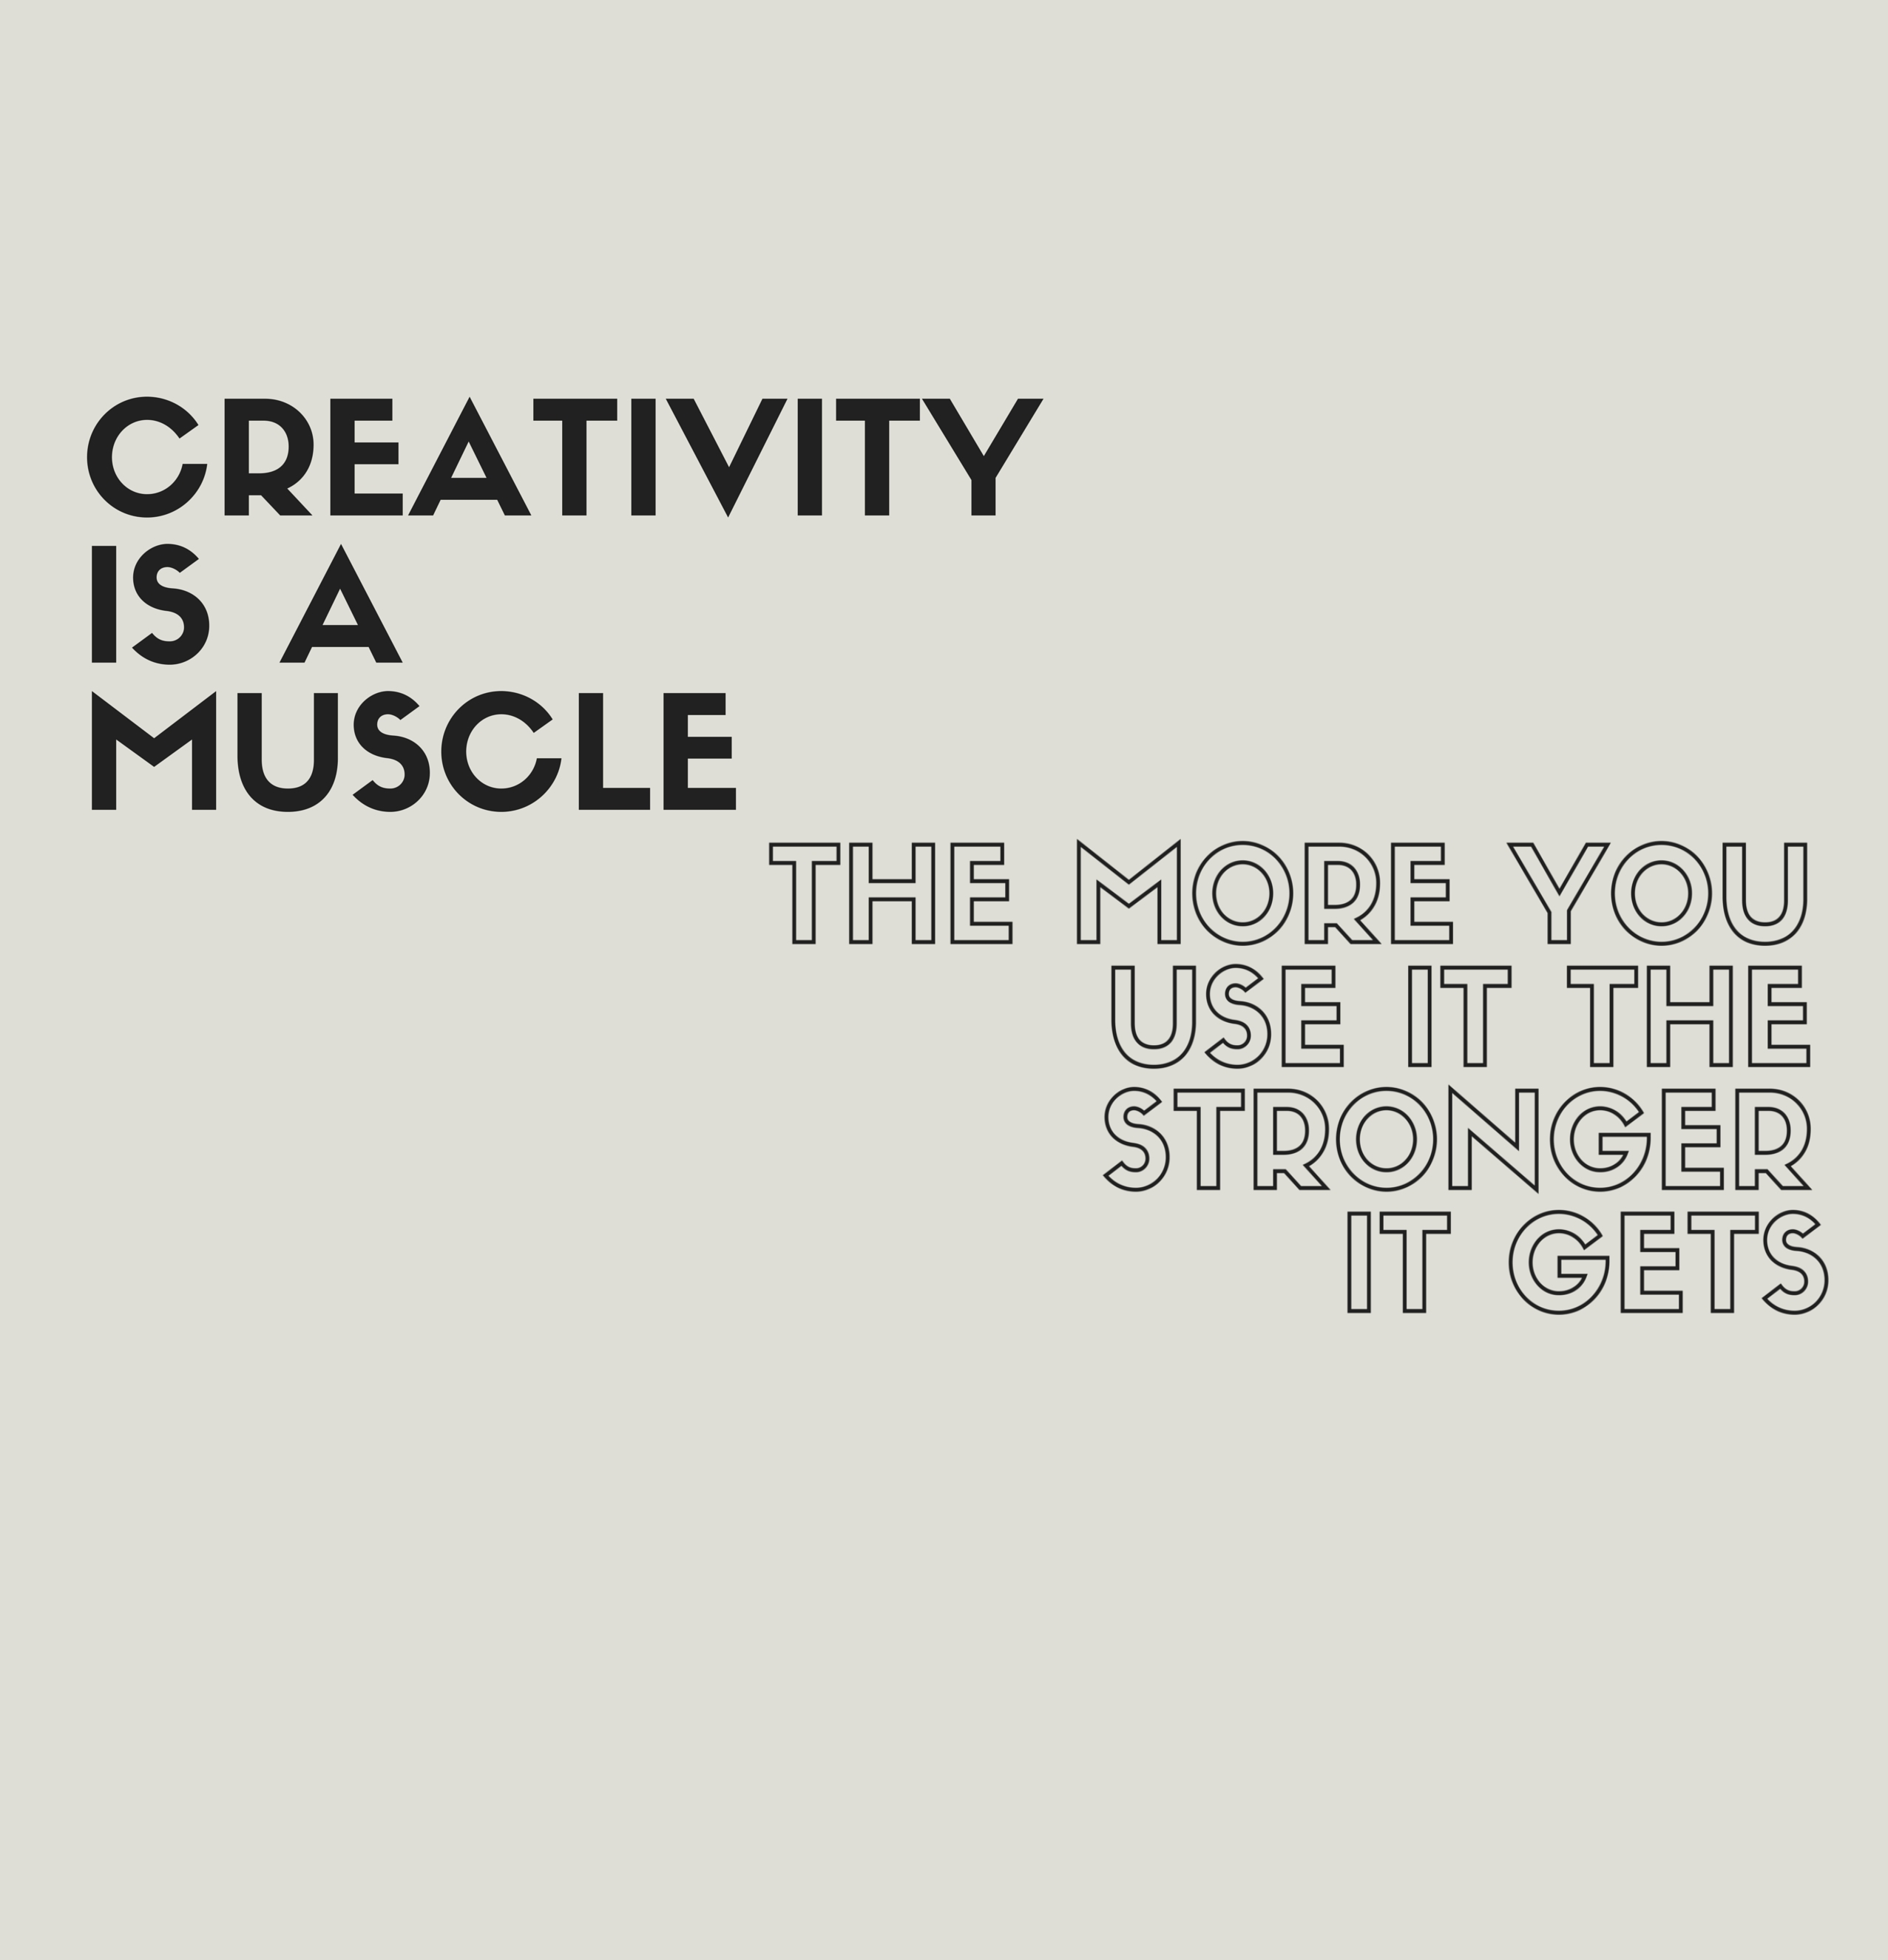 Creativity is a muscle. Excercise your ideas